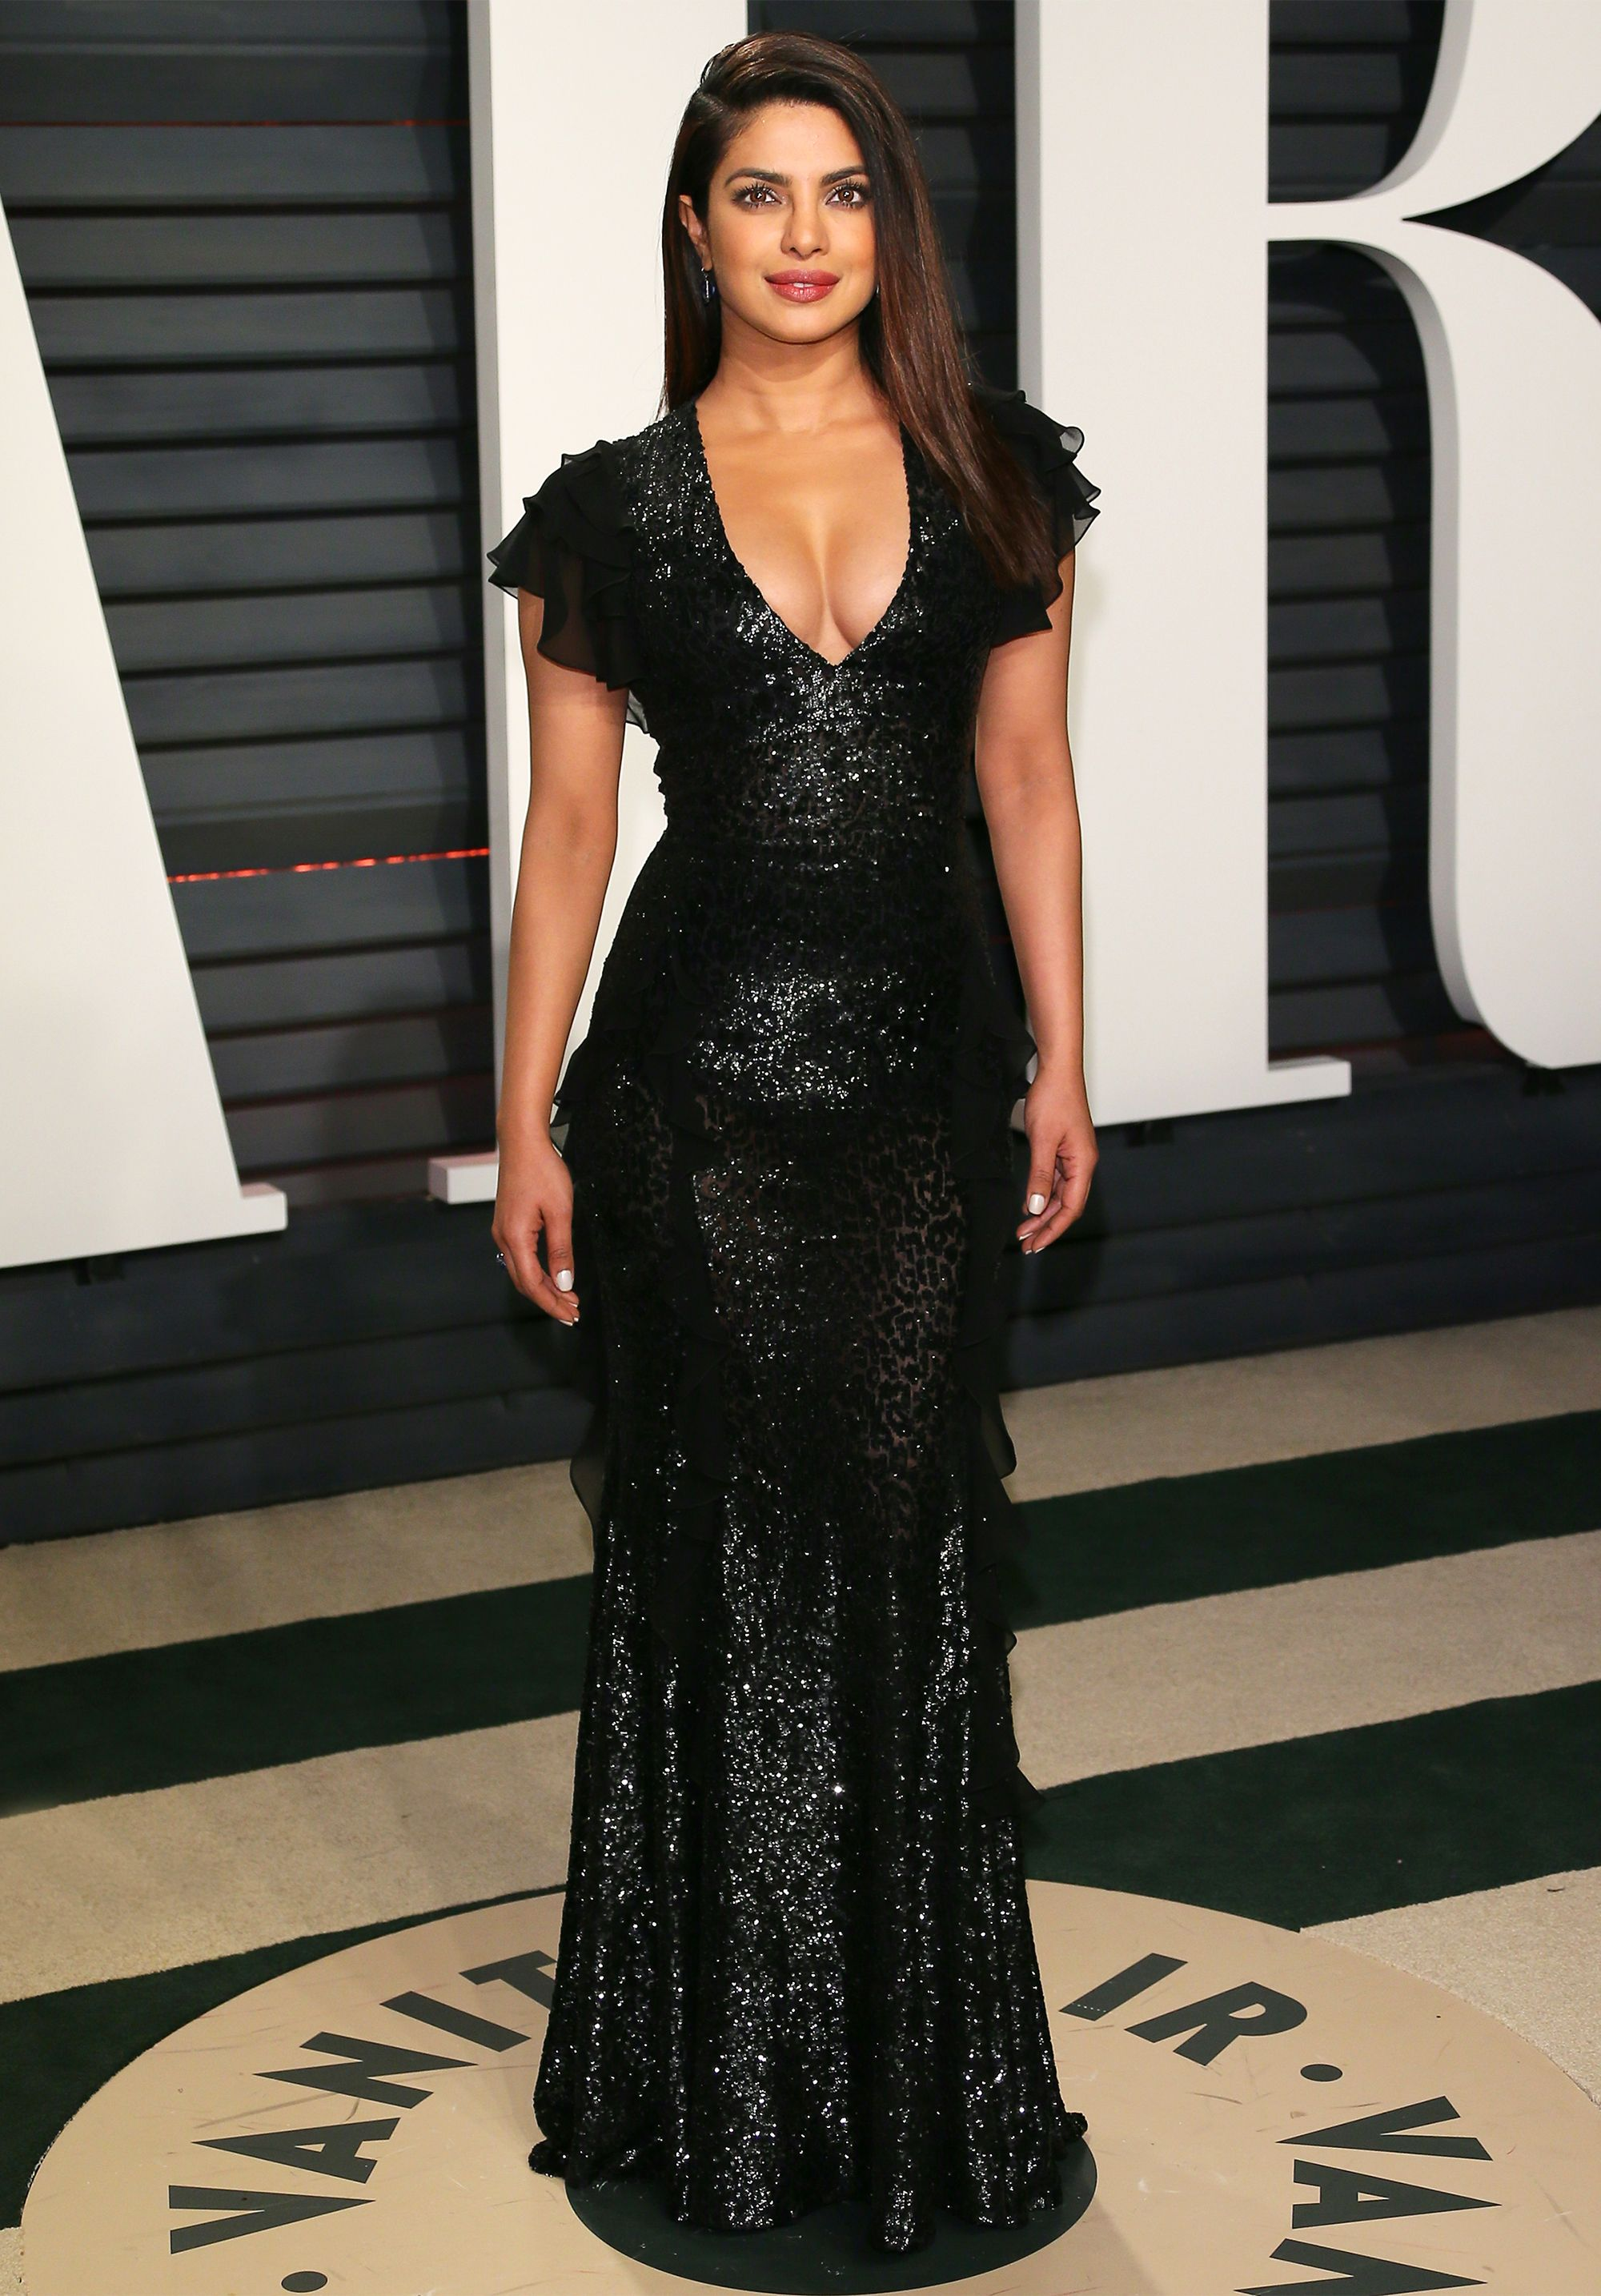 f23418b1d1 Inside the Hottest Parties of Oscar Night - Priyanka Chopra from InStyle.com